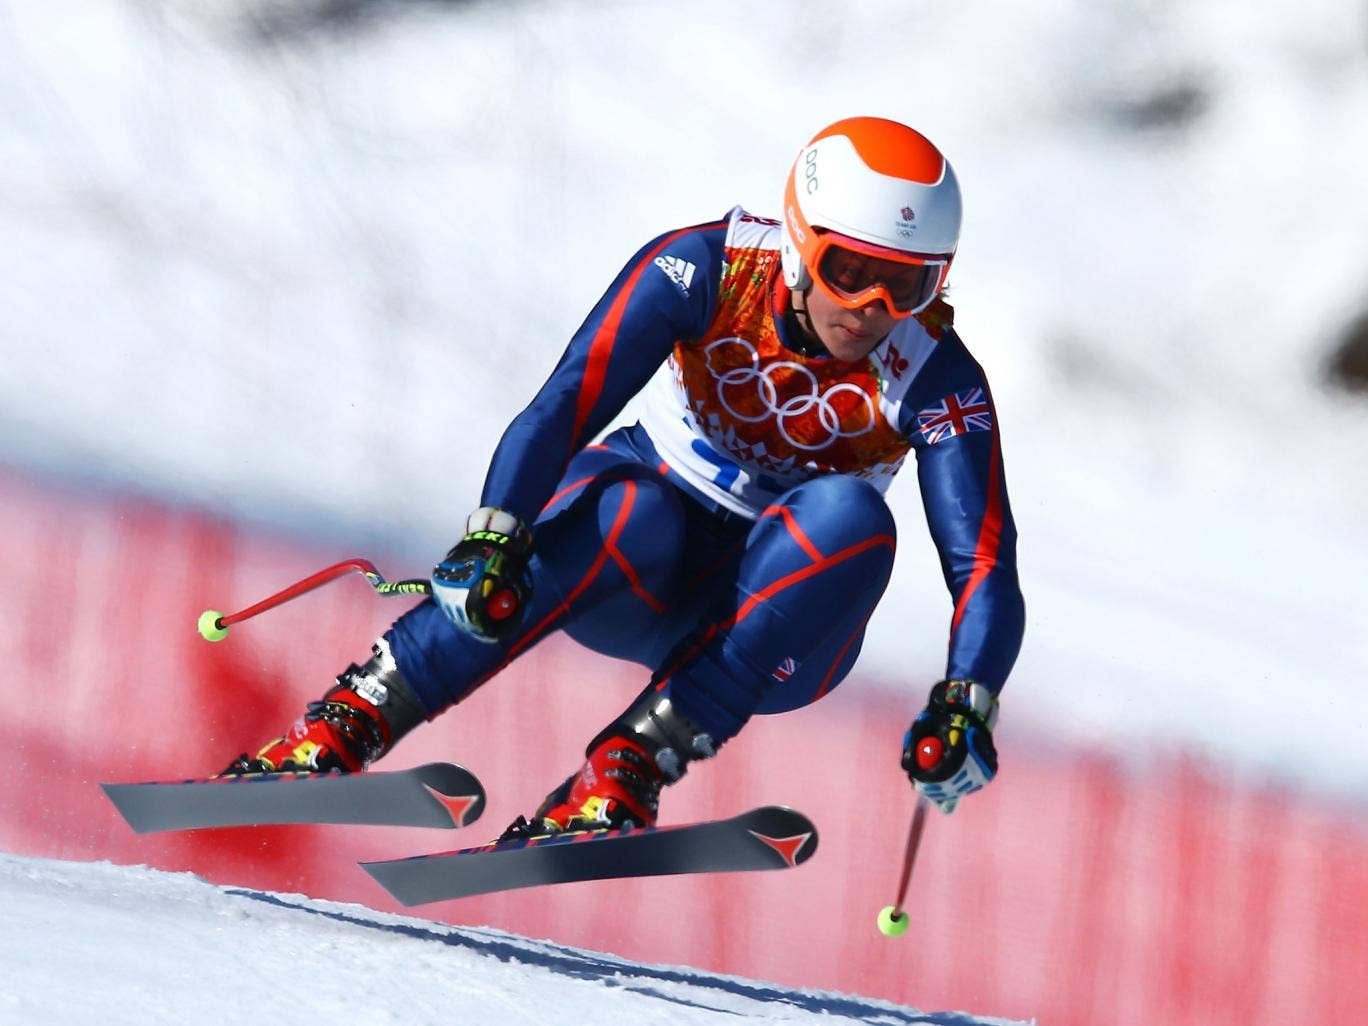 Chemmy Alcott in action in the women's super-g, where she finished 23rd